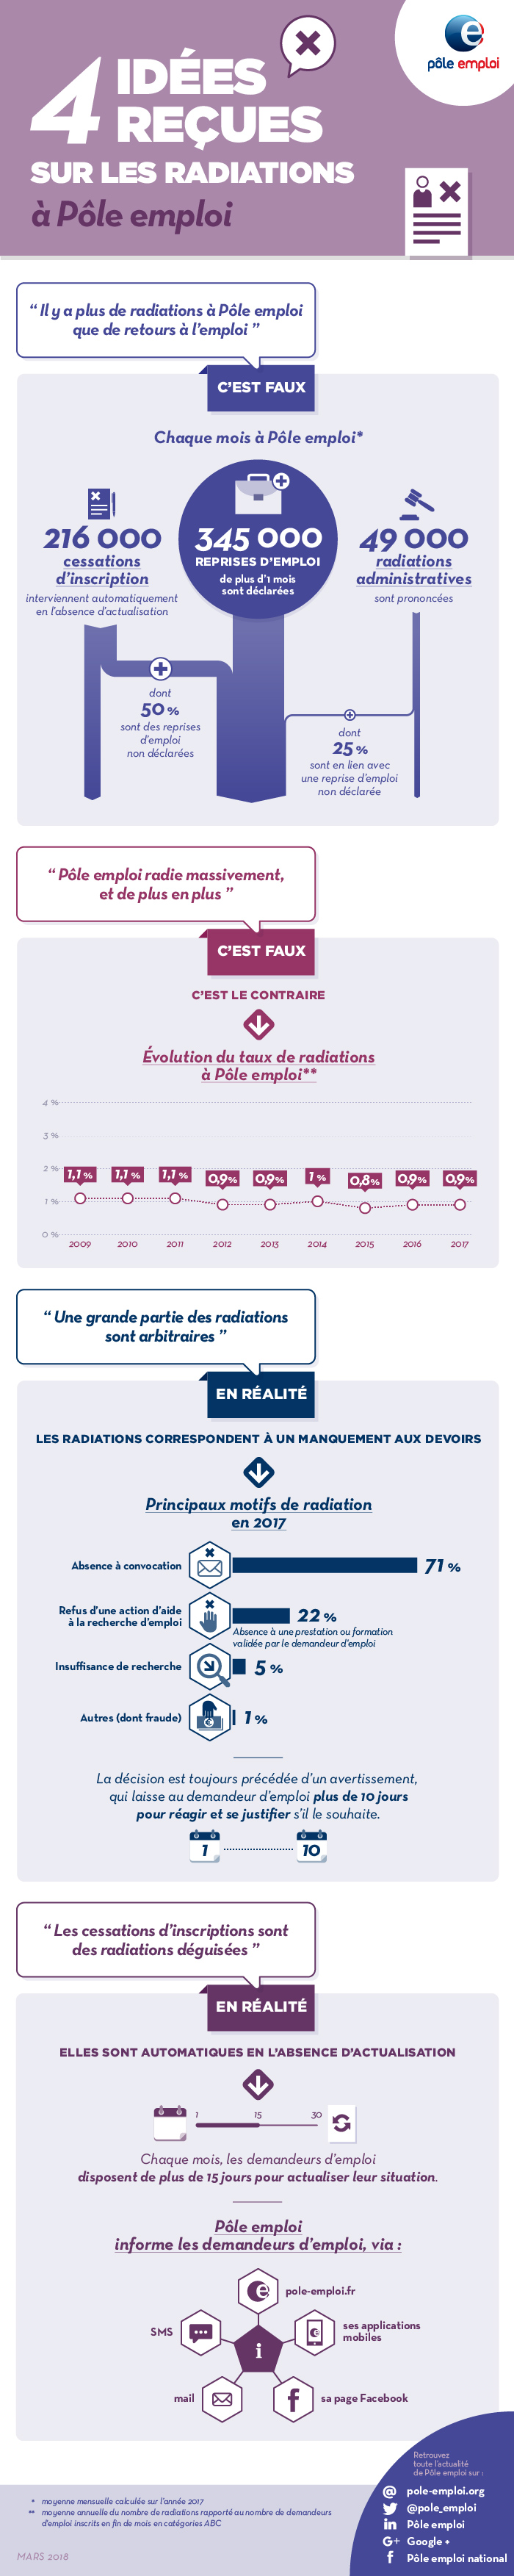 4 Idees Recues Sur Les Radiations A Pole Emploi Pole Emploi Org